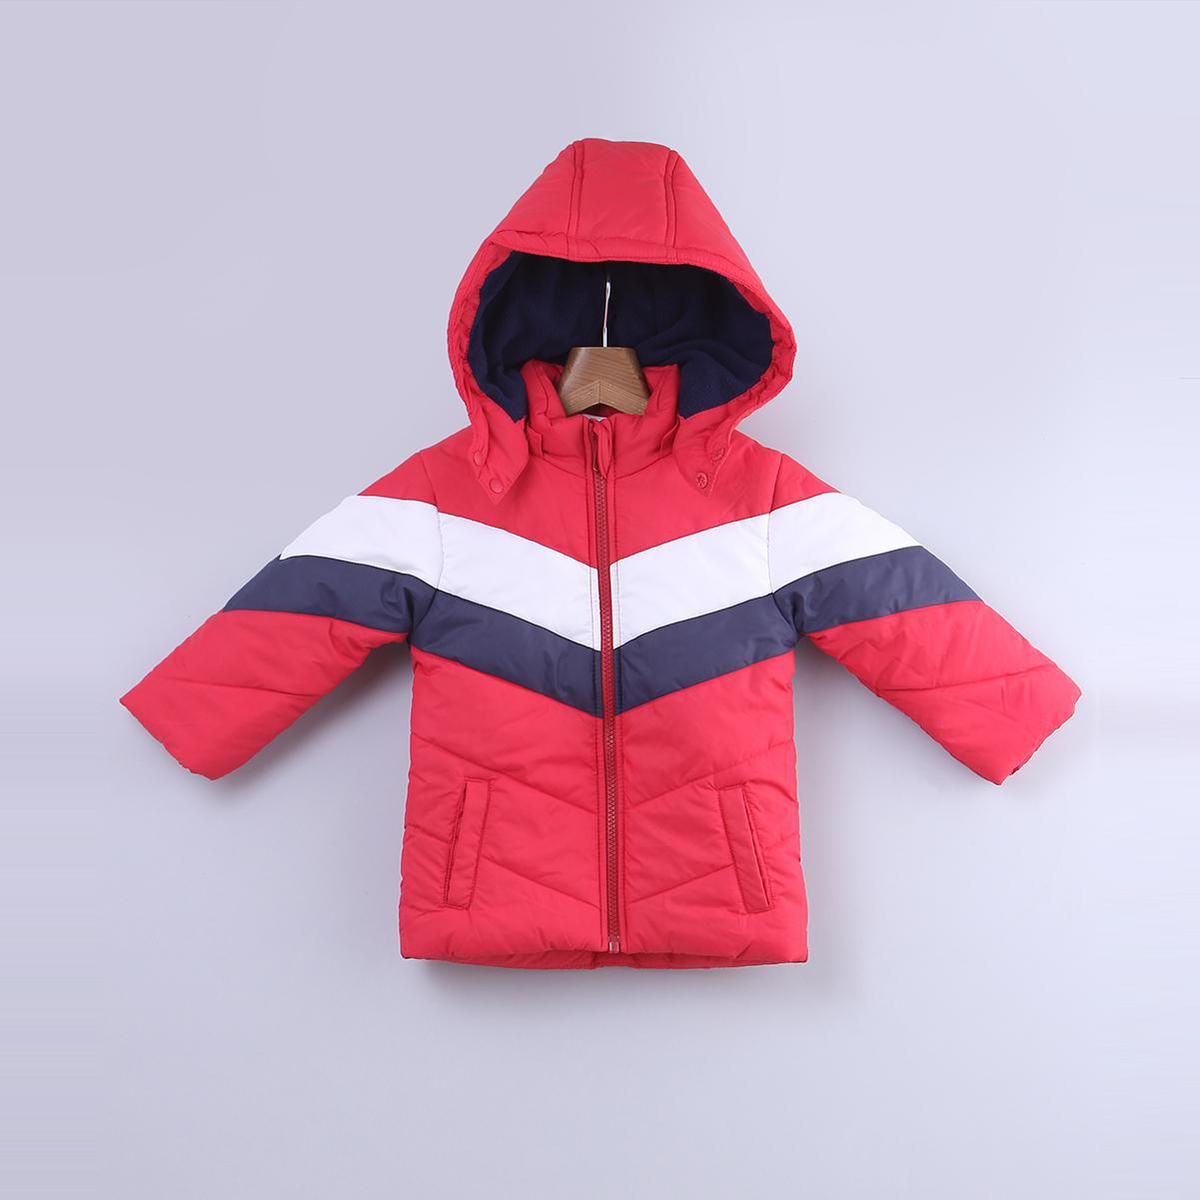 Beebay - Red Colored Block Polyester Jacket For Infants Boys